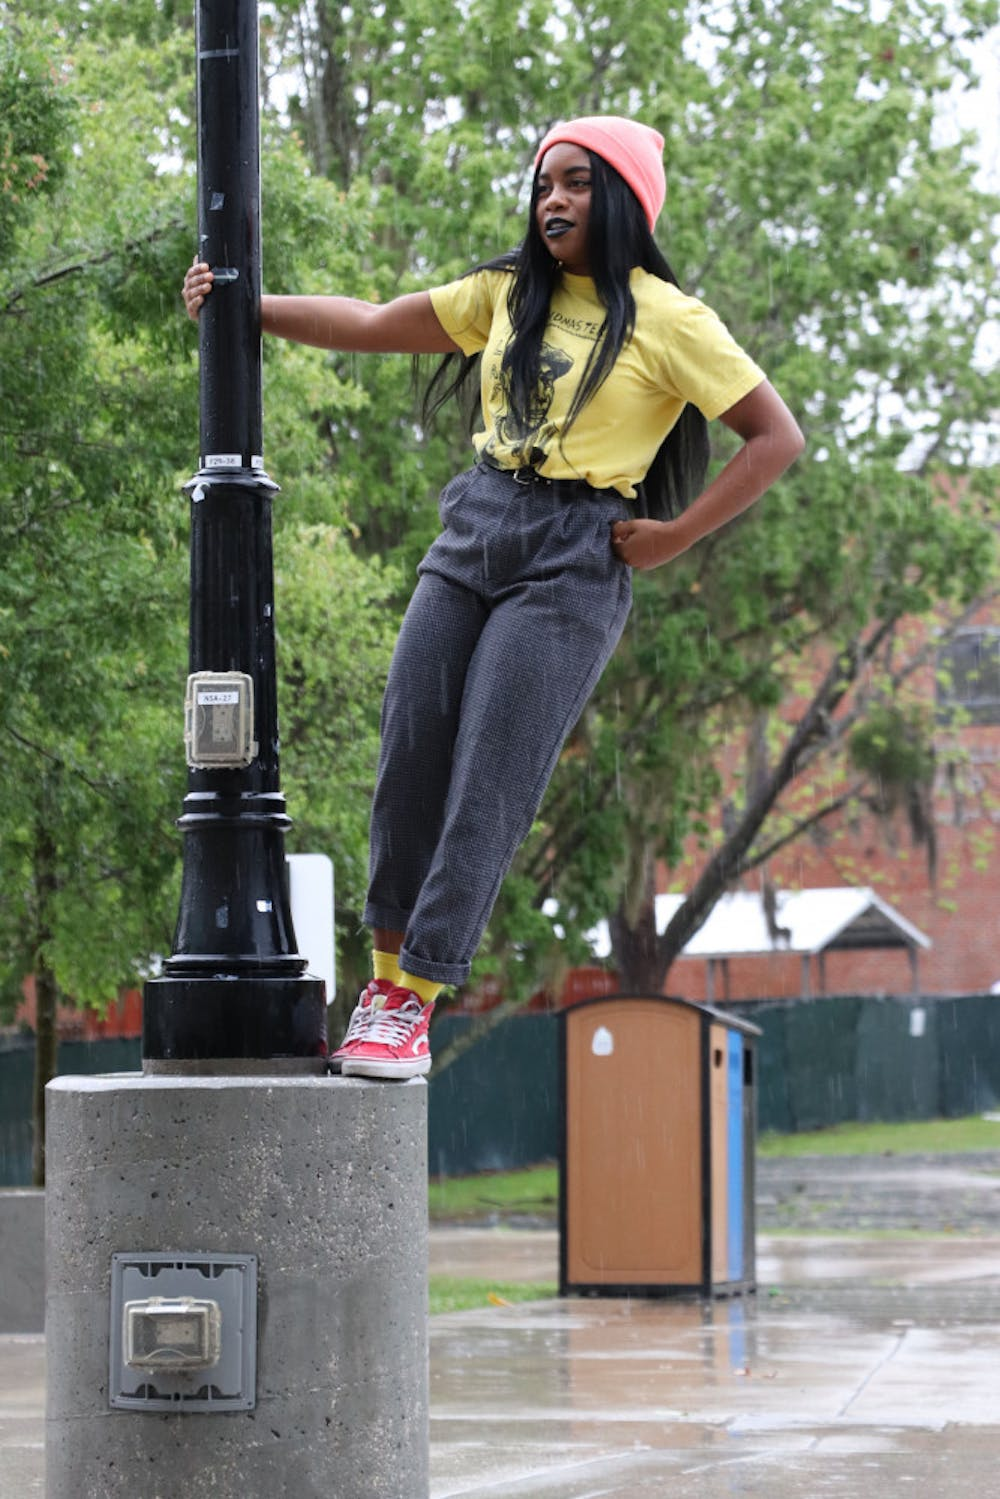 """<p dir=""""ltr""""><span>Imani Selvon is a 20-year-old UF dance sophomore. Her usual outfits for school consist of a T-shirt with leggings because she is a dance major. Don't let her casual look fool you, she is completely dedicated to fashion in her spare time. She is constantly getting inspired by magazines, TV shows and Instagram. Selvon likes to DIY her own clothing sometimes too.</span></p><p><span></span></p>"""